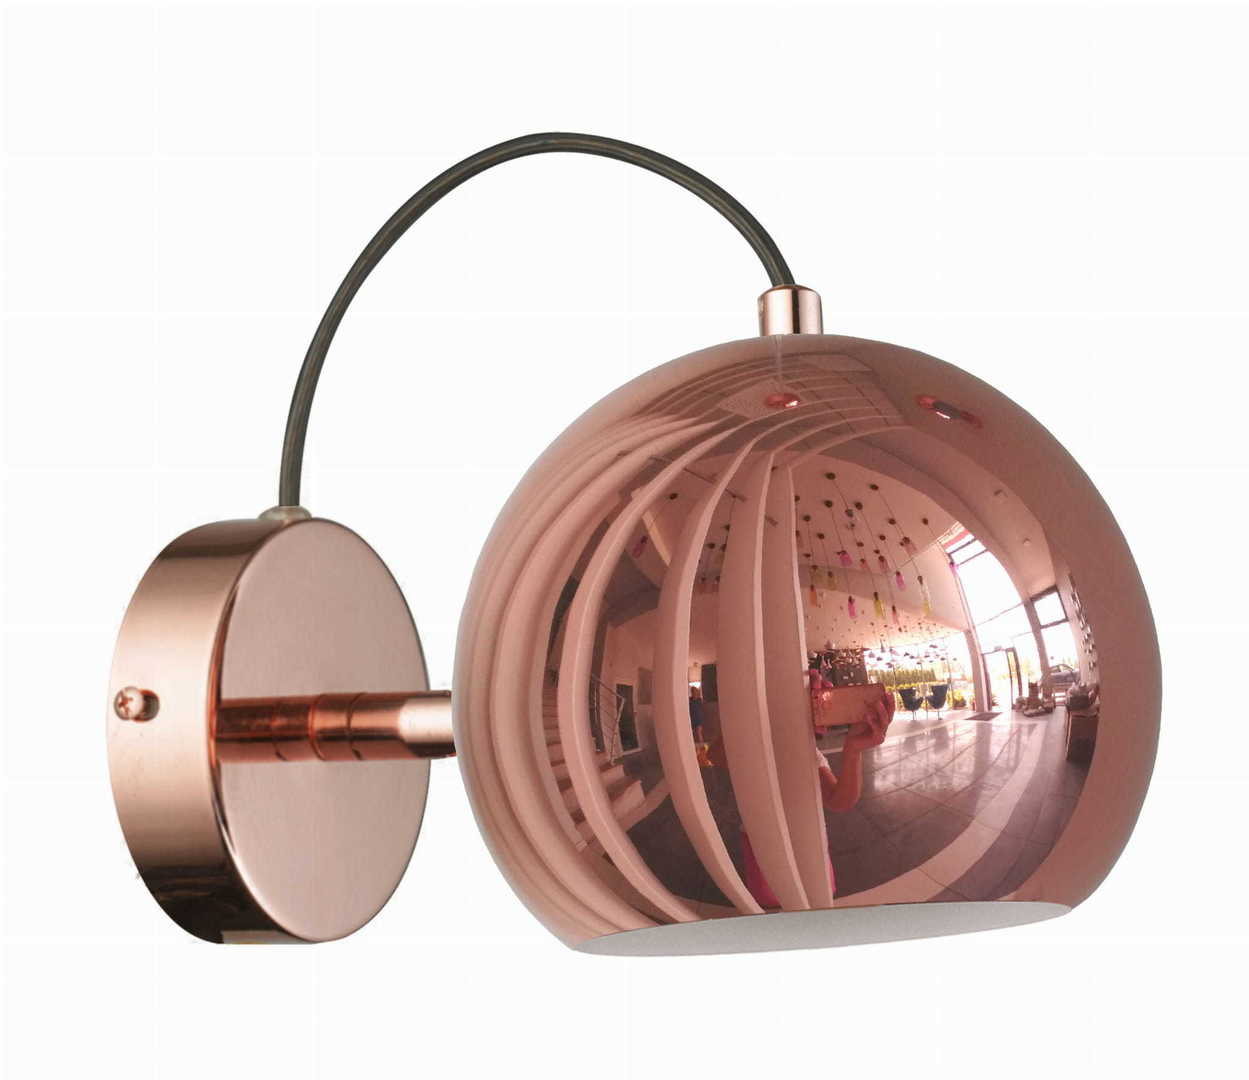 Rame wall lamp